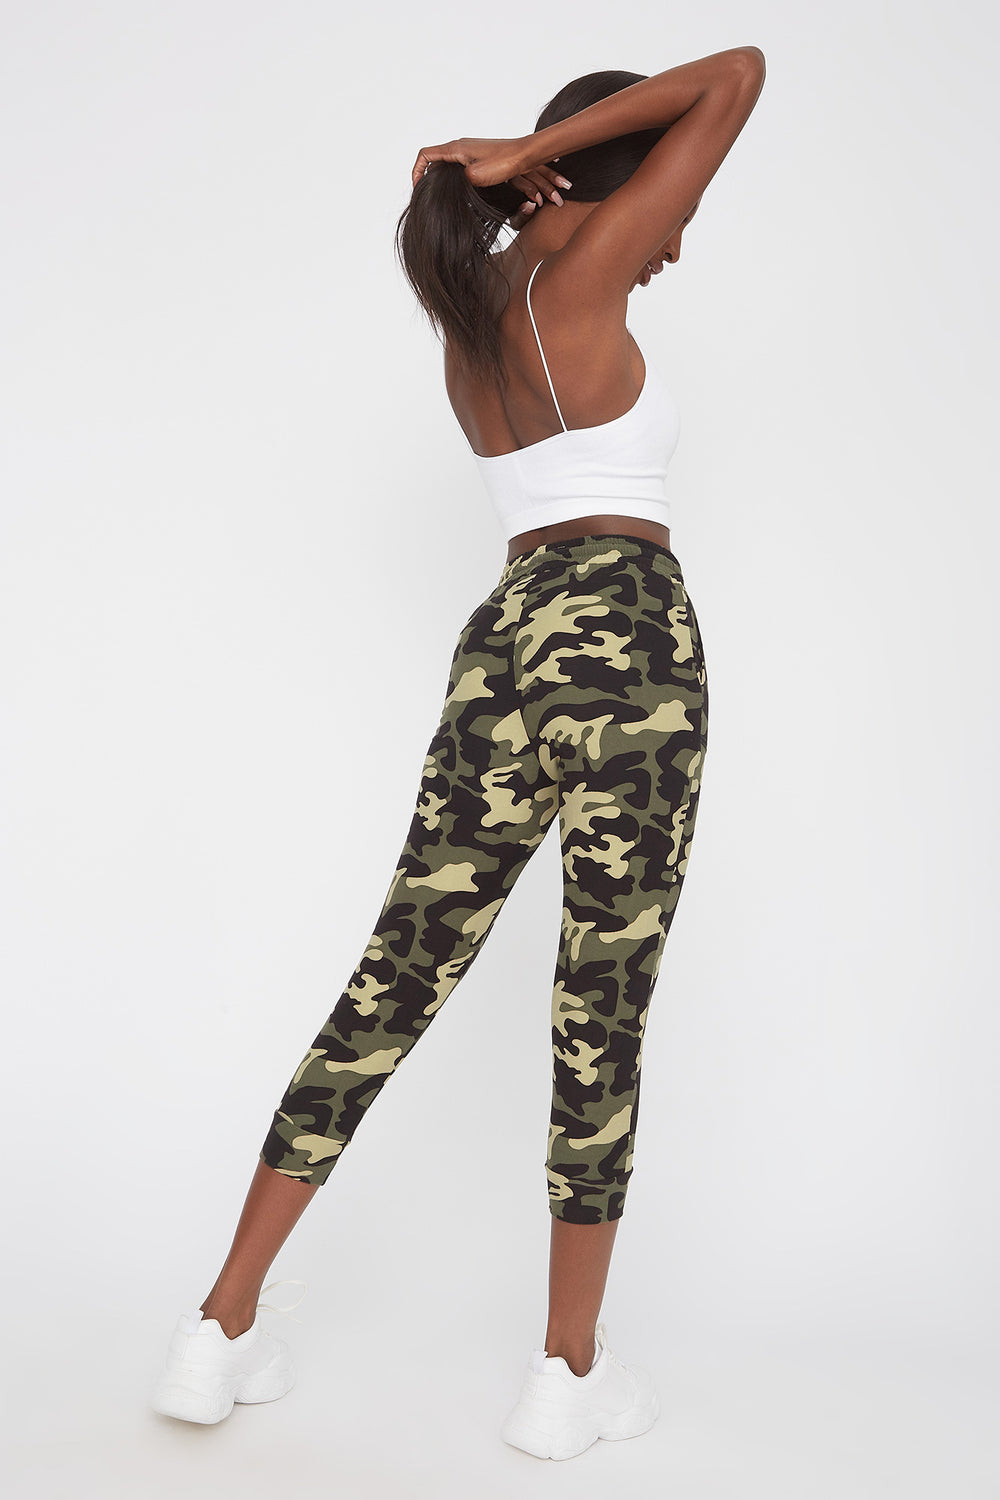 Pantalon de jogging court super doux Camoufle